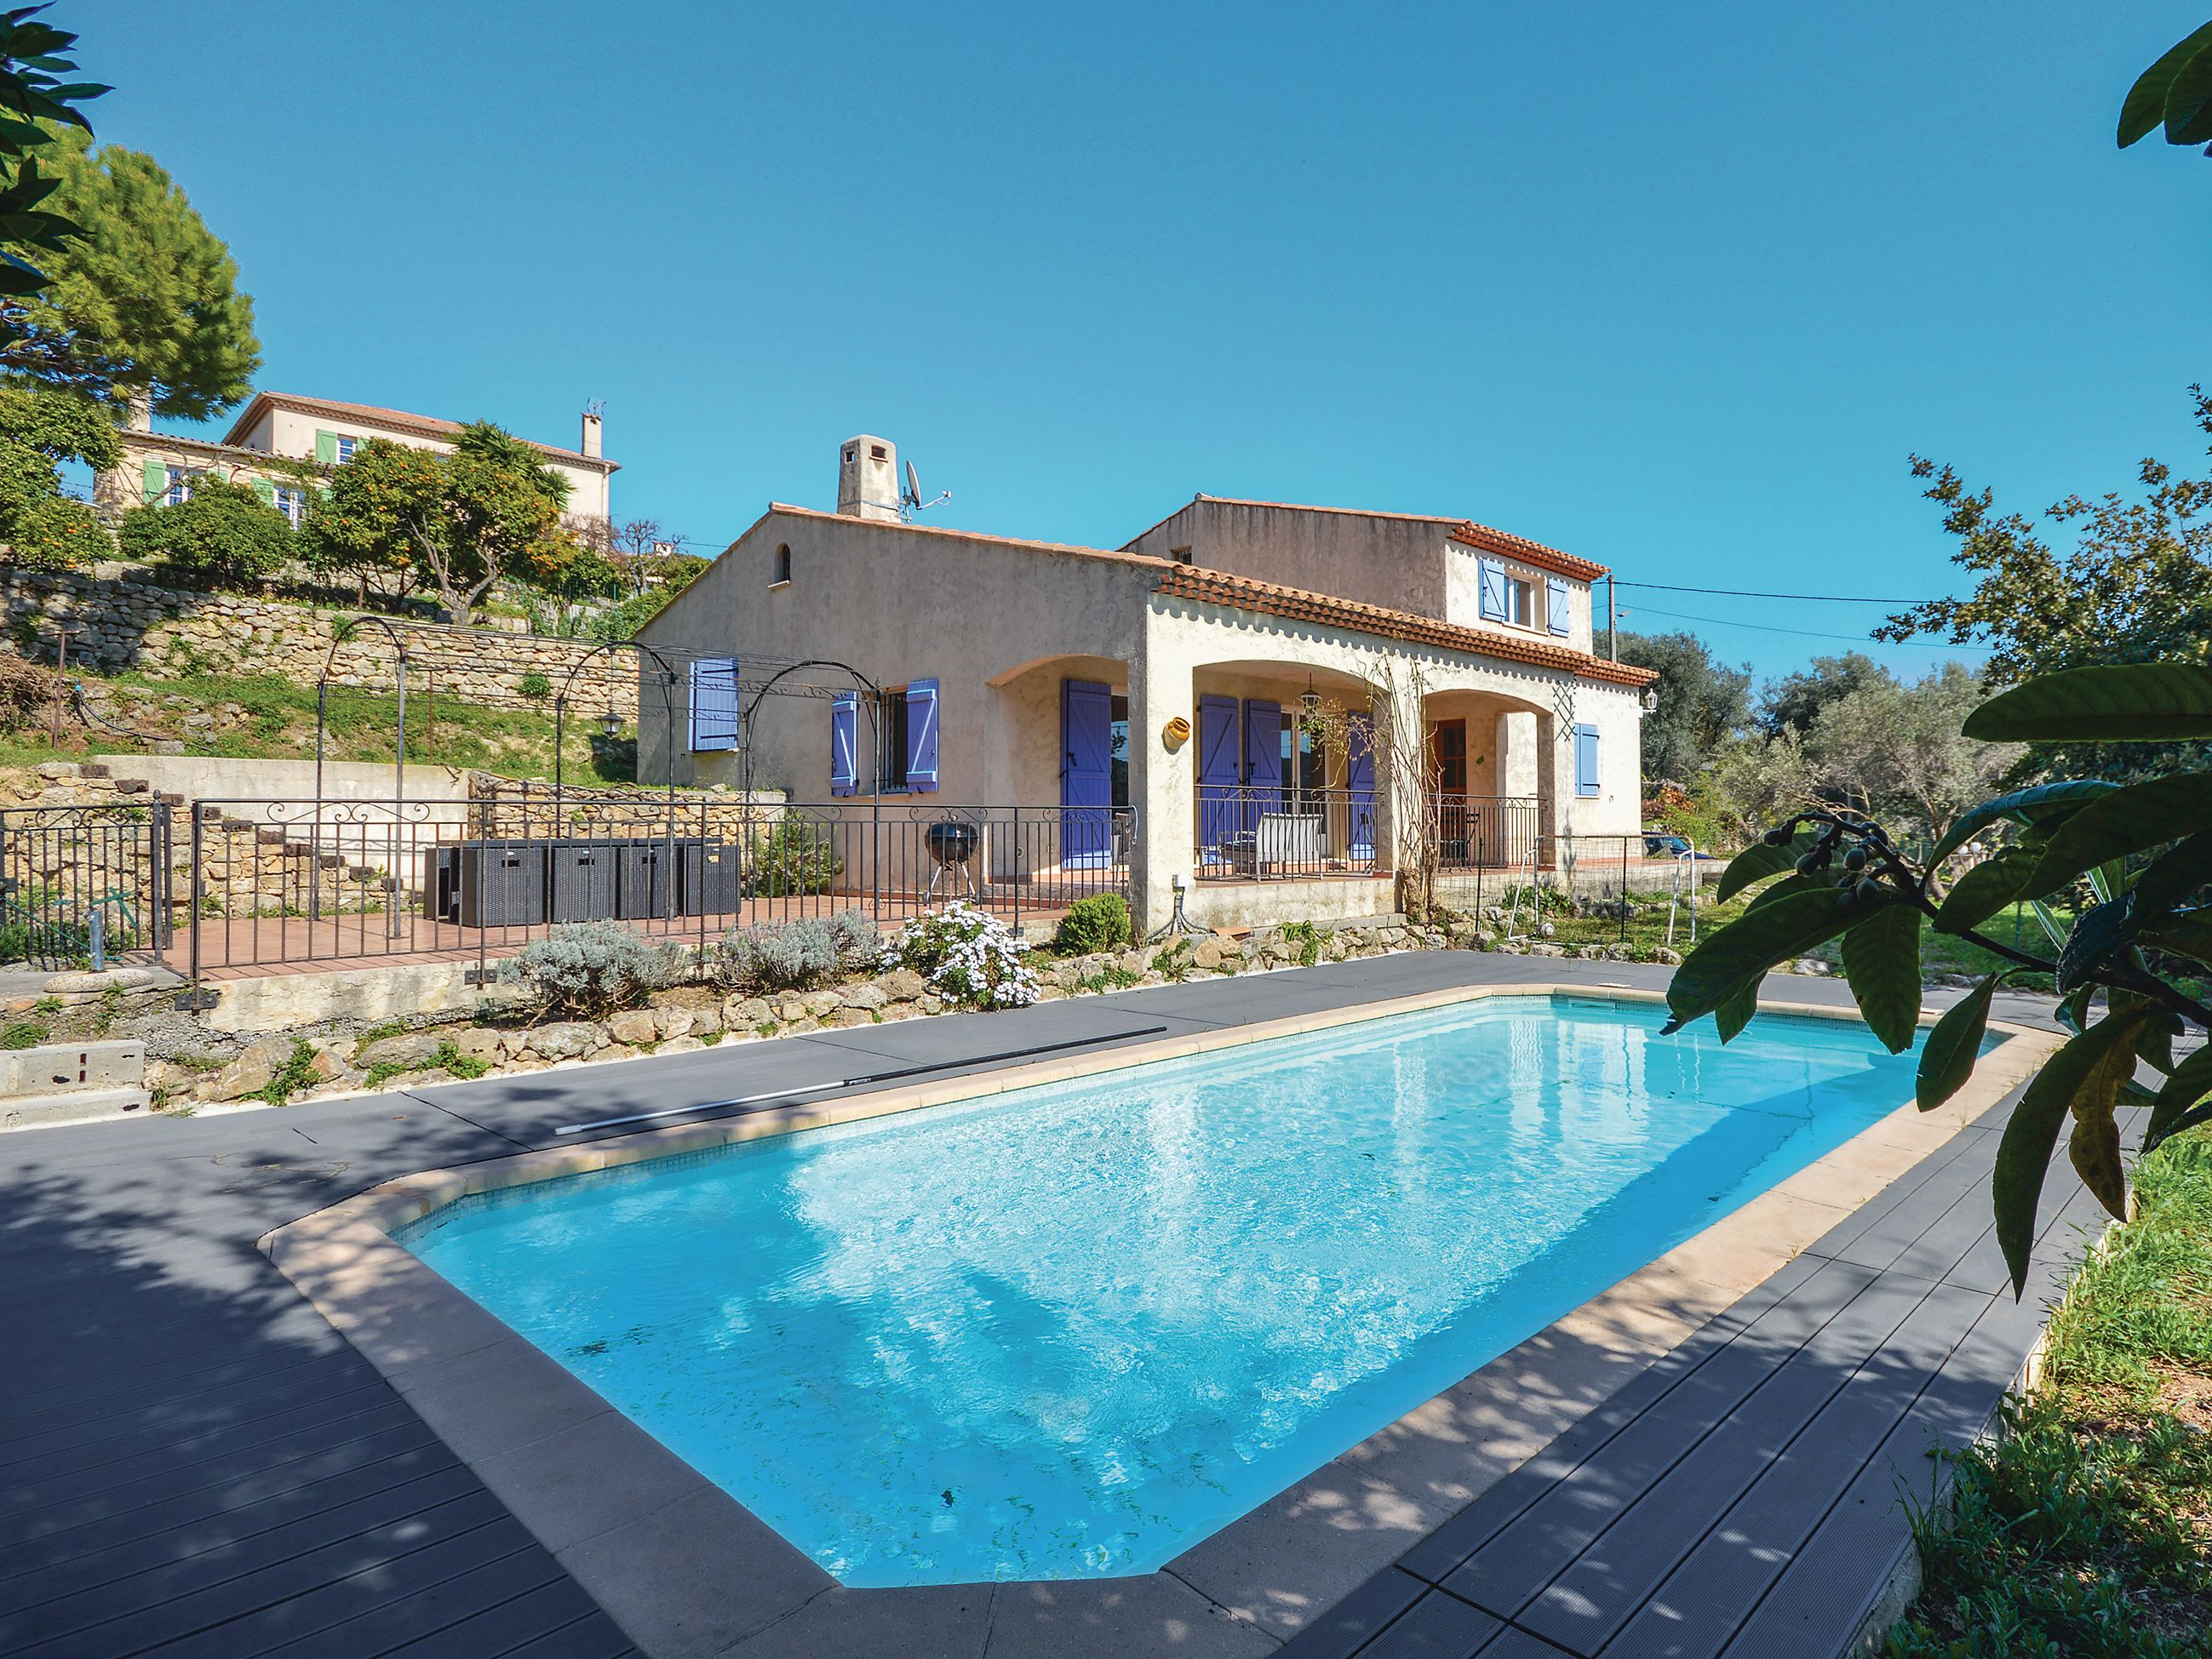 This charming Provençal villa has its own fenced swimming pool with an adjacent terrace.